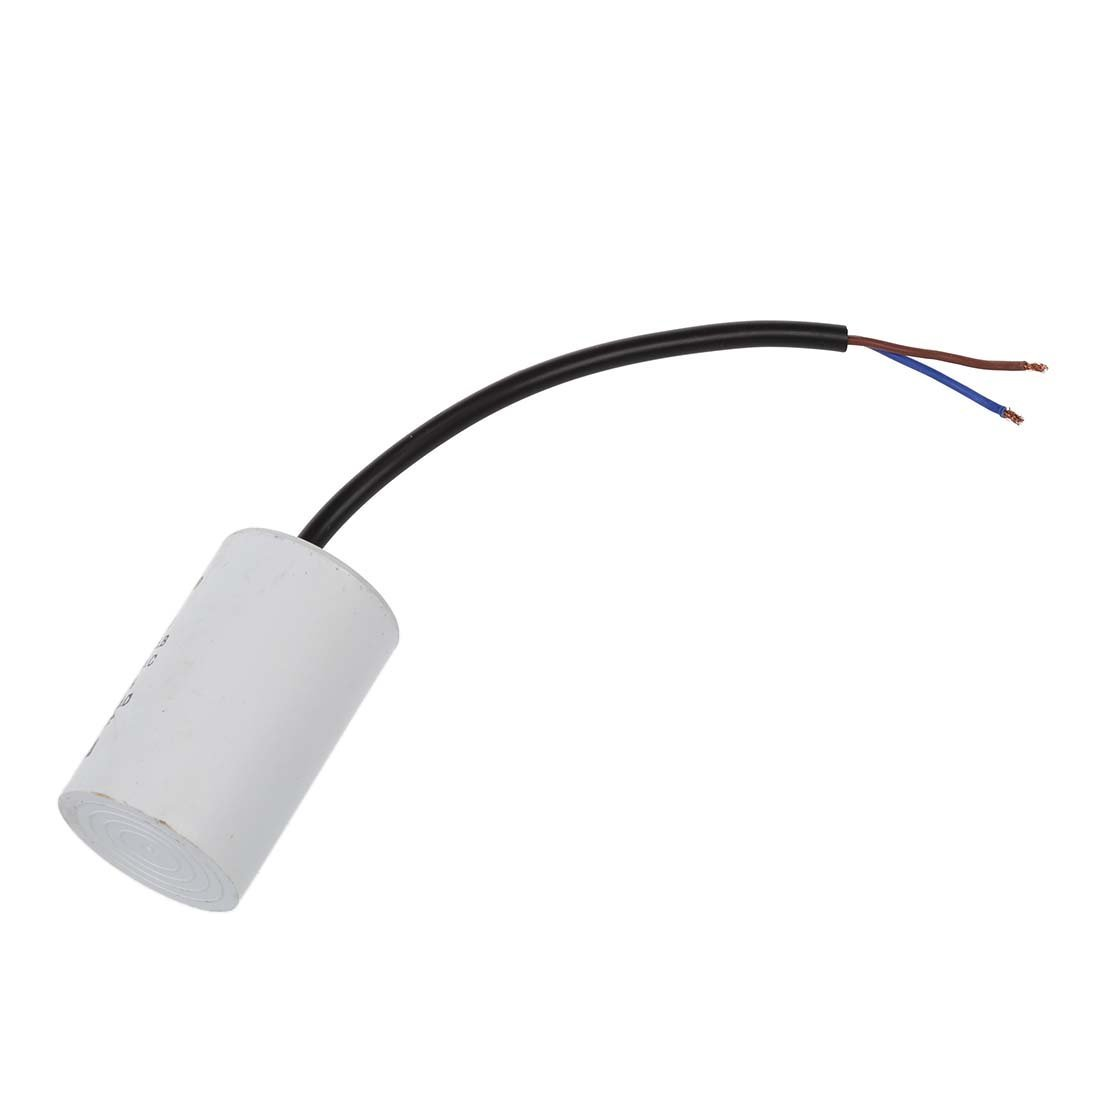 CBB60 450VAC 25uF 5% Wired Terminal Motor Capacitor: Amazon.com: Industrial & Scientific